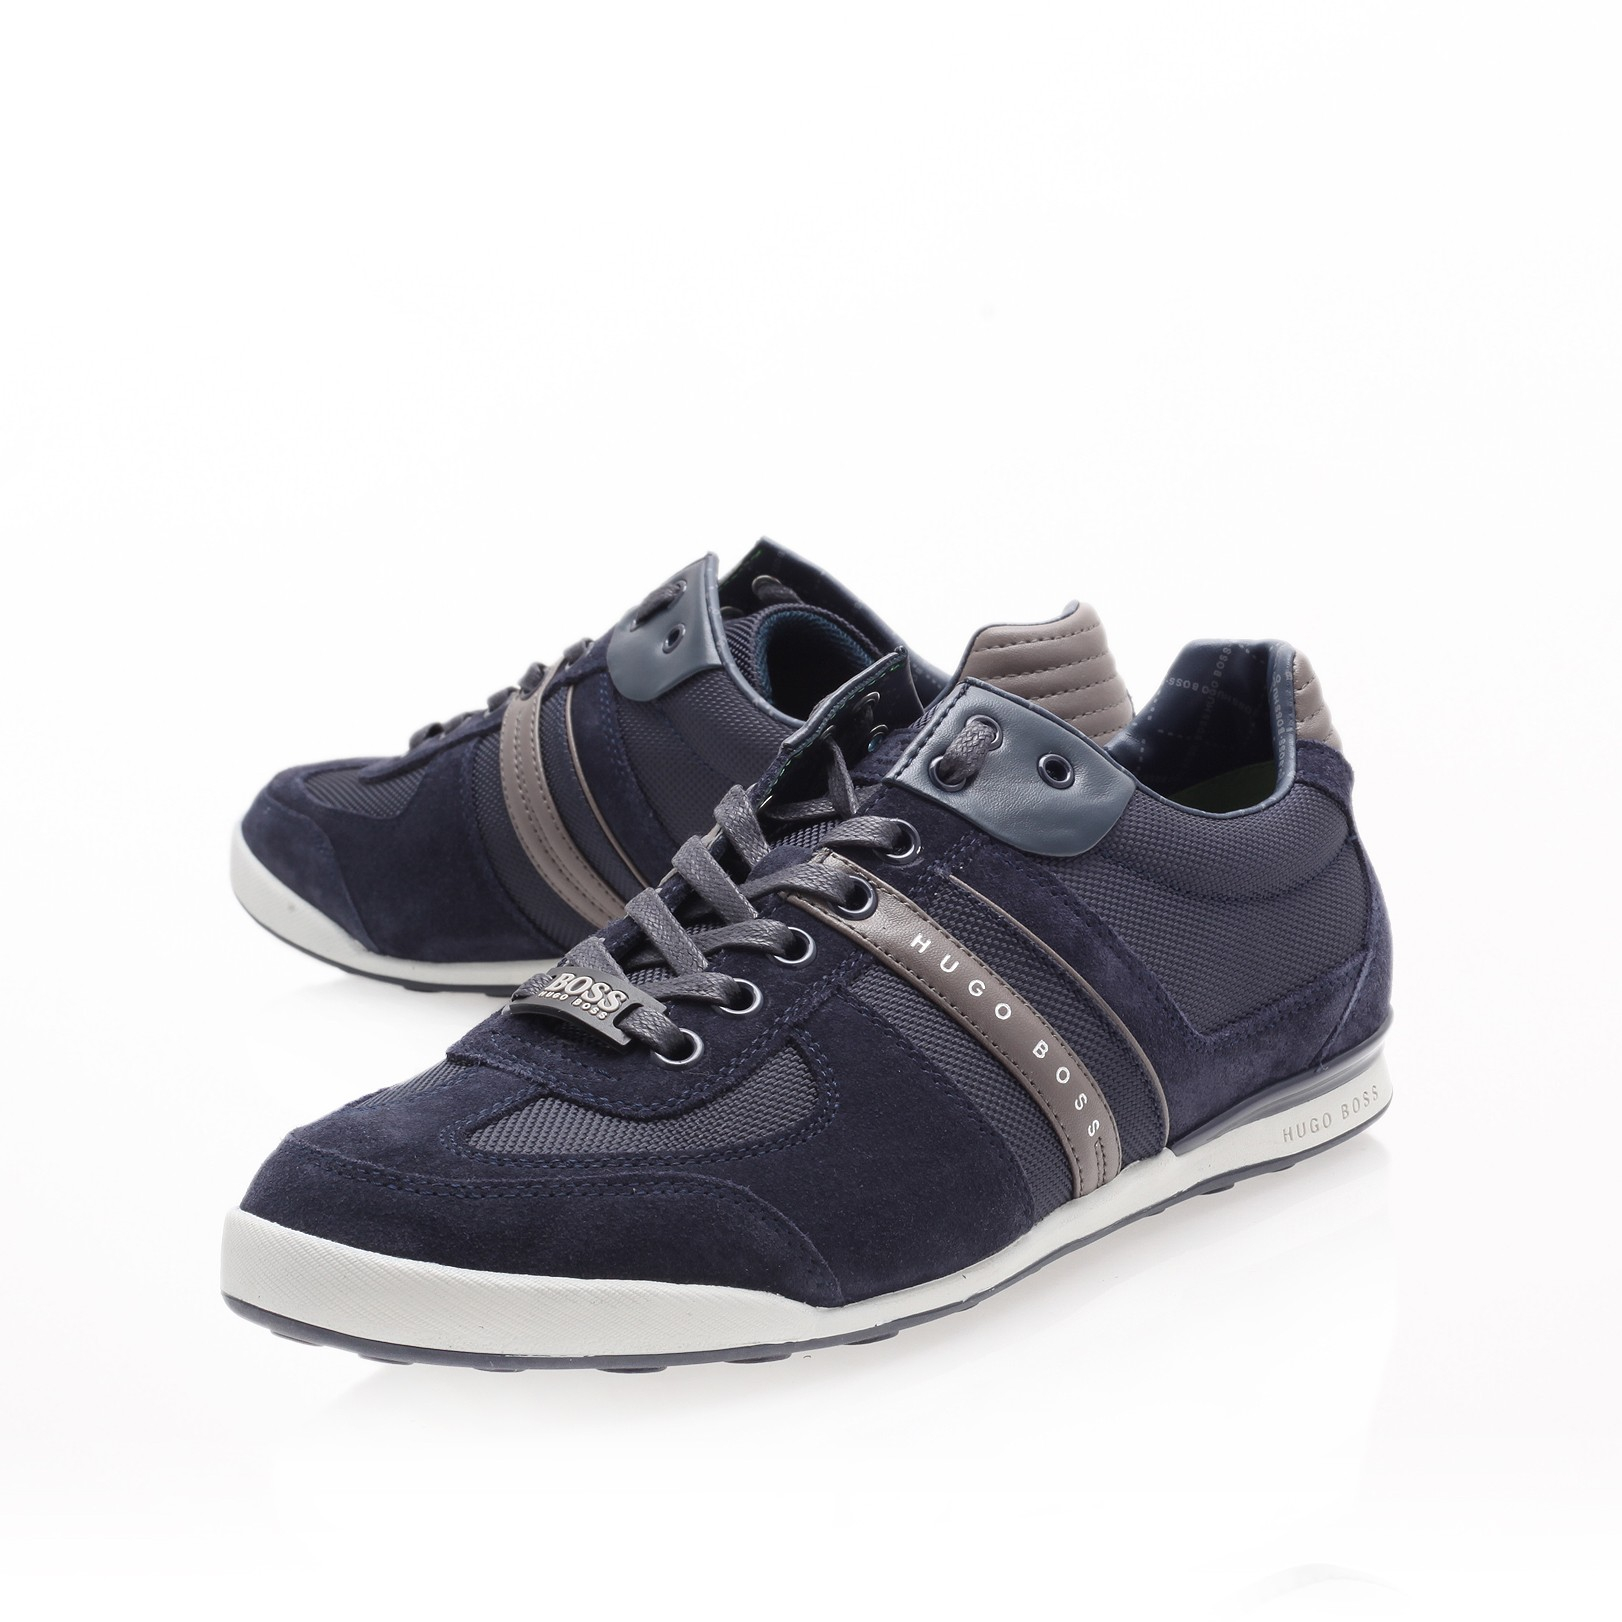 Hugo Boss Sneakers Boss Akeen Lo Pro Sneaker In Blue For Men Navy Lyst